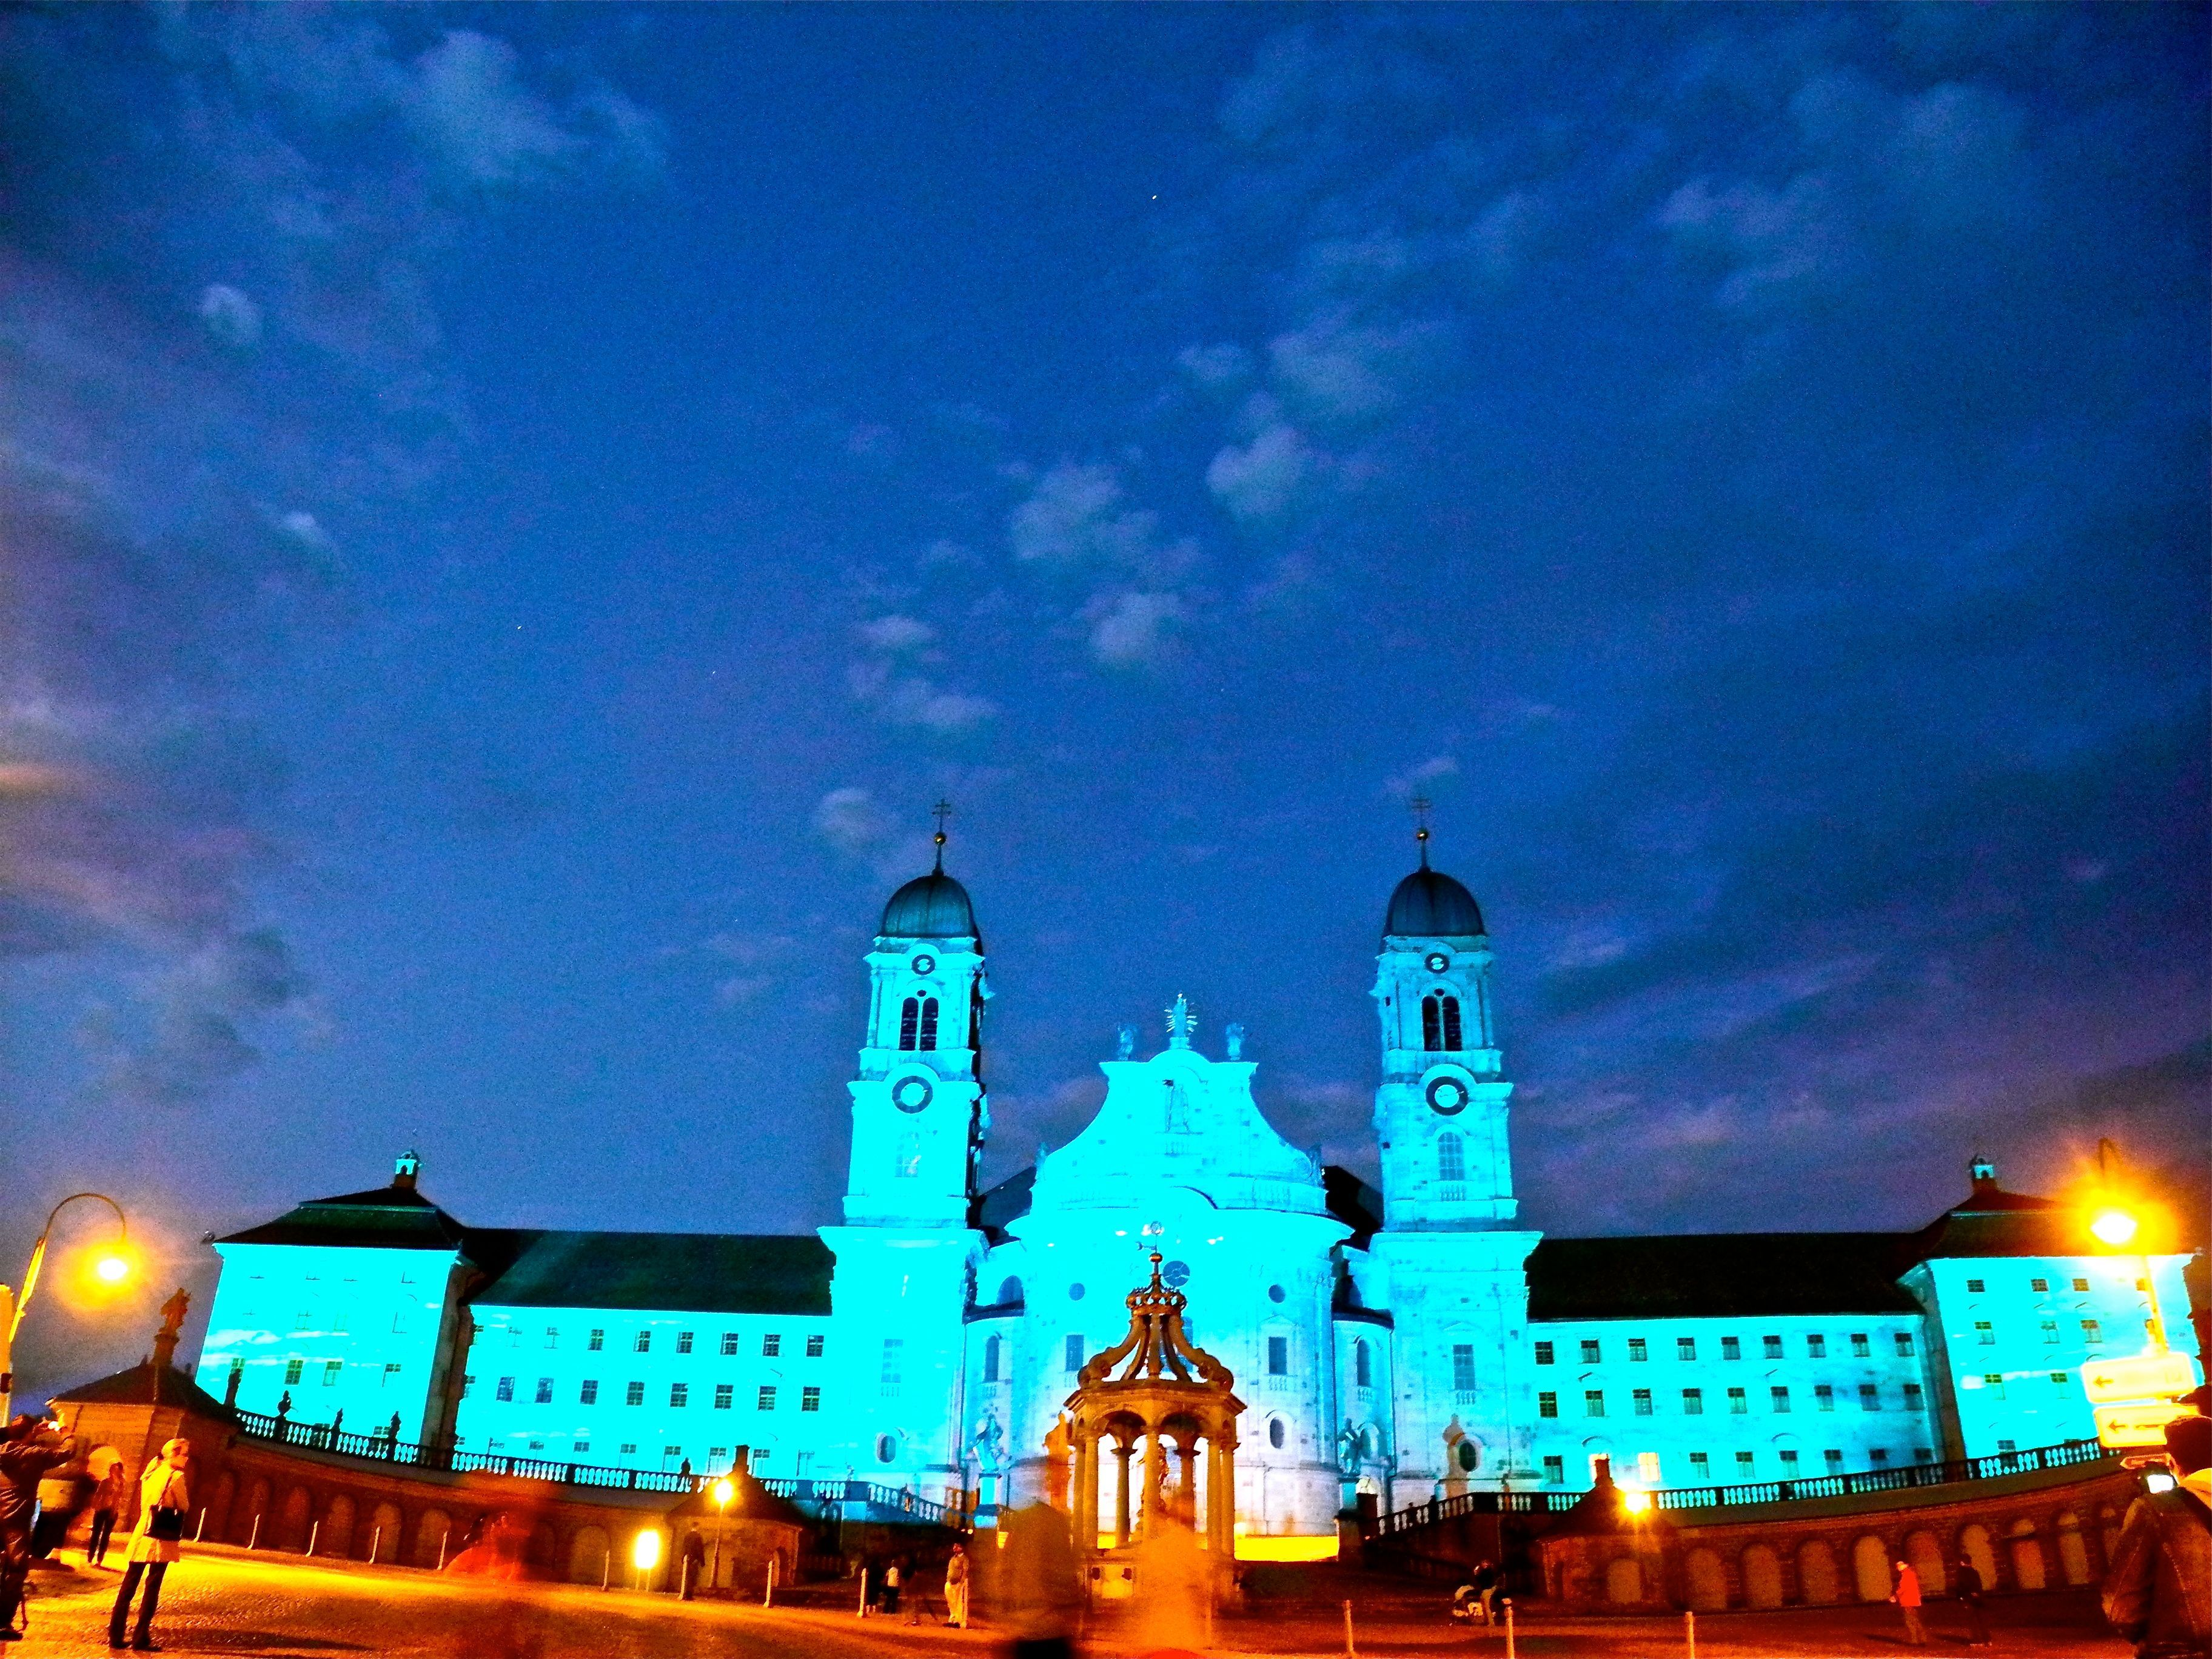 Illumination of famous Abbey Einsiedeln The abbey is a Benedictine